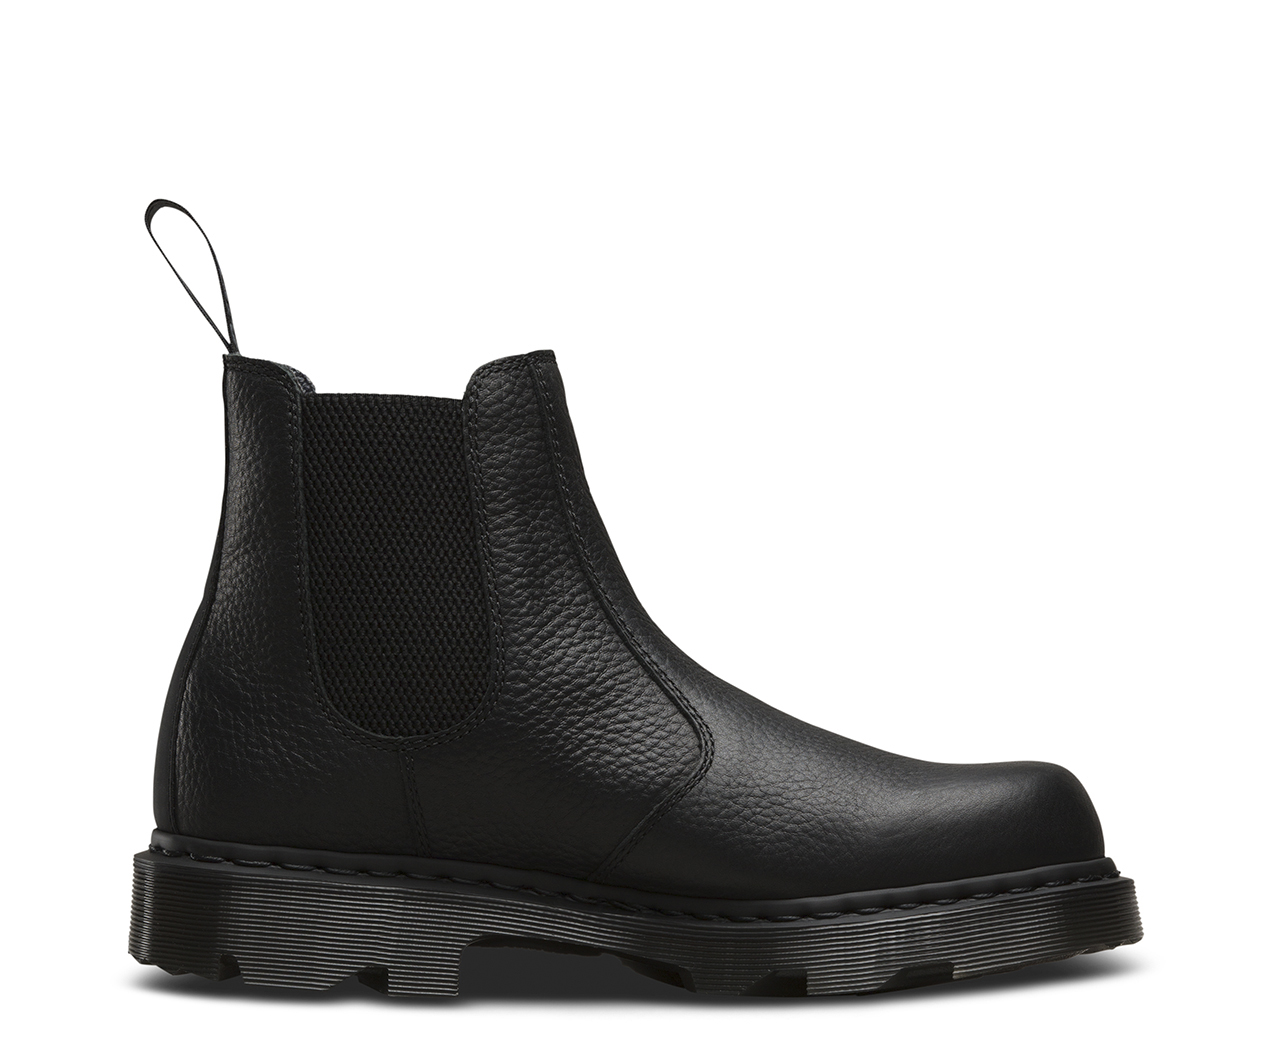 Howden NS Dr. Martens